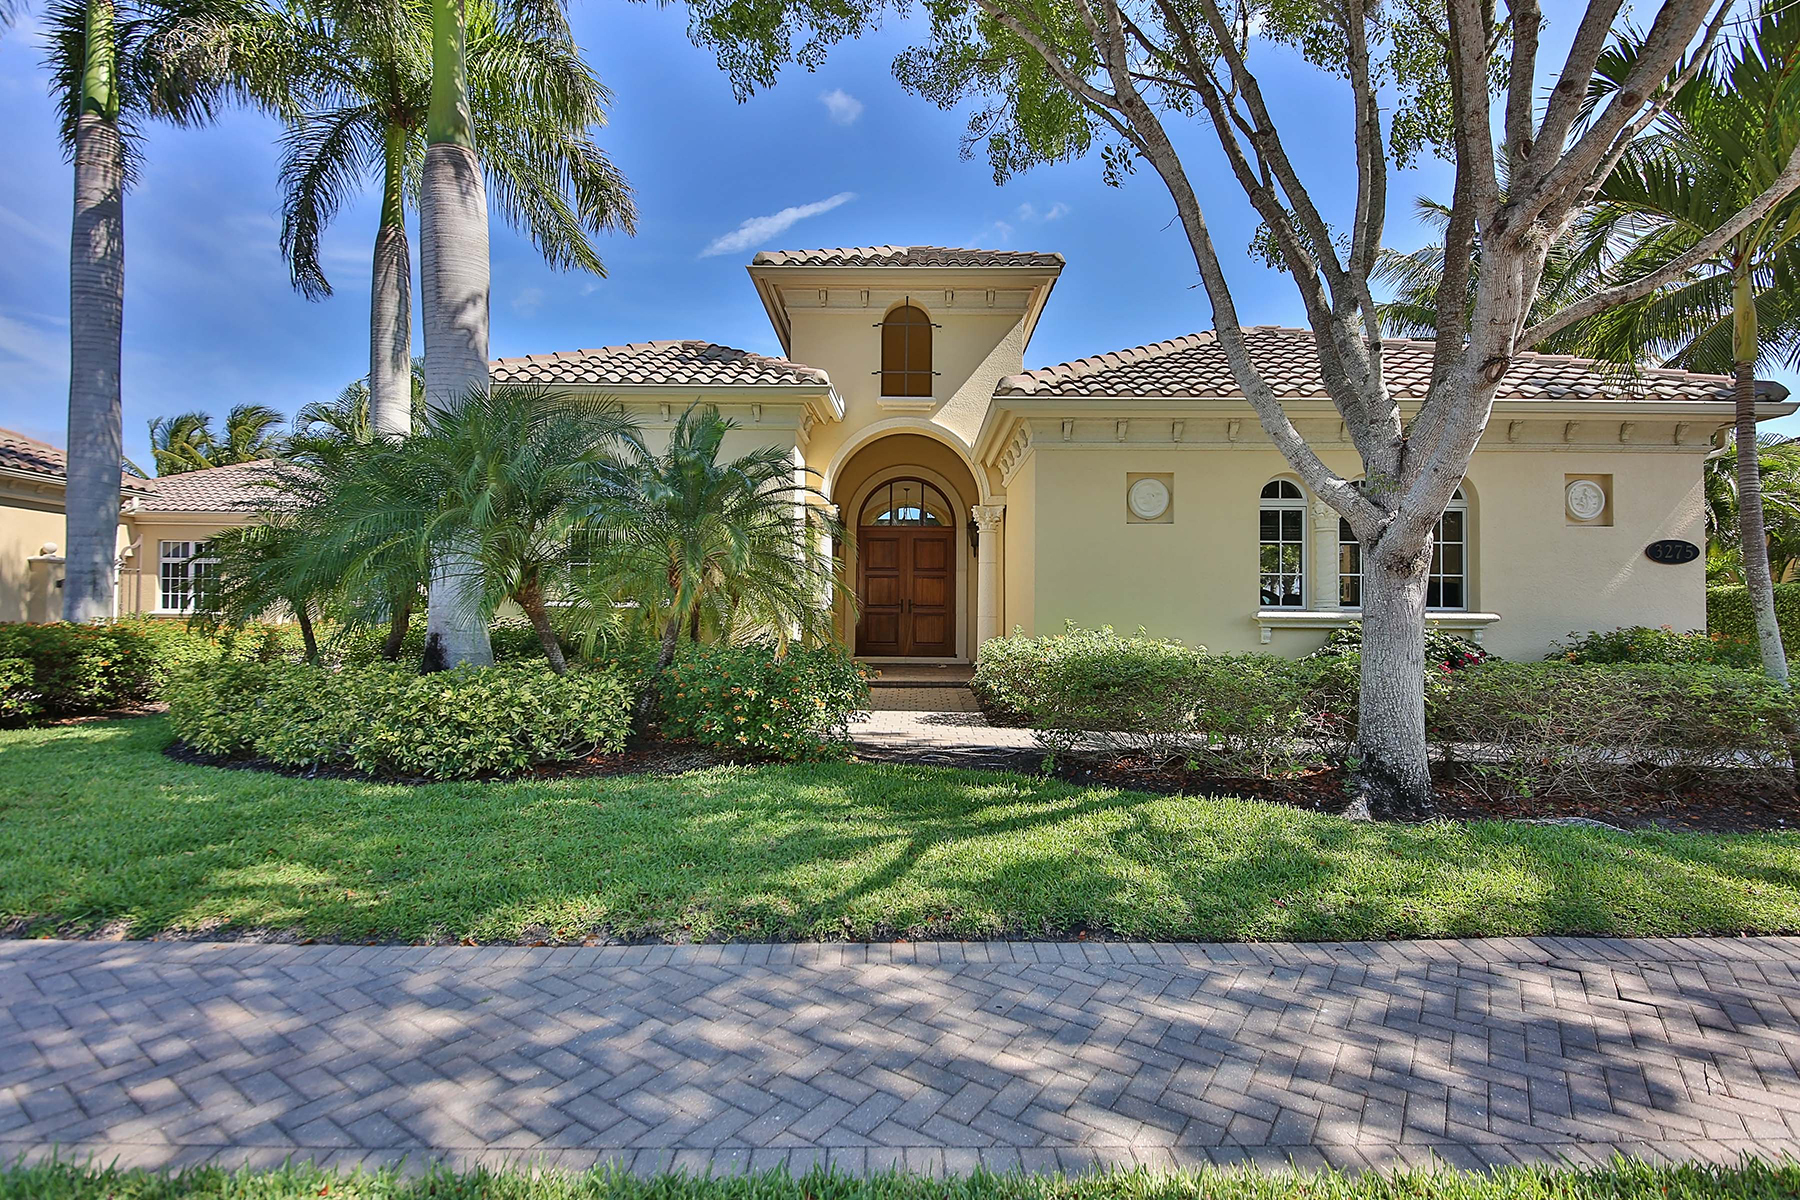 واحد منزل الأسرة للـ Rent في FIDDLERS CREEK - SAUVIGNON 3275 Hyacinth Dr, Naples, Florida, 34114 United States